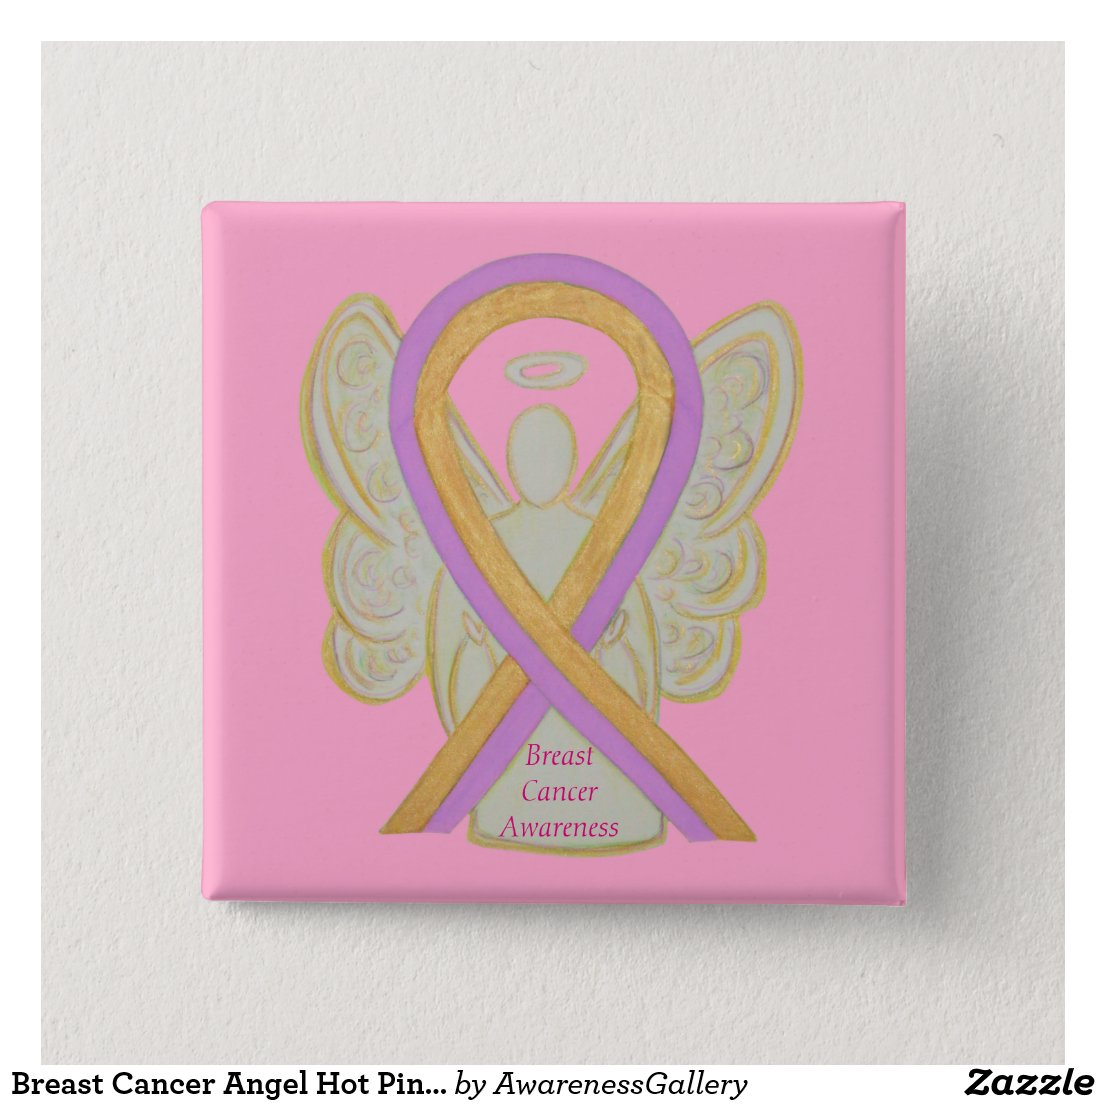 Breast Cancer Angel Hot Pink Awareness Ribbon Pins